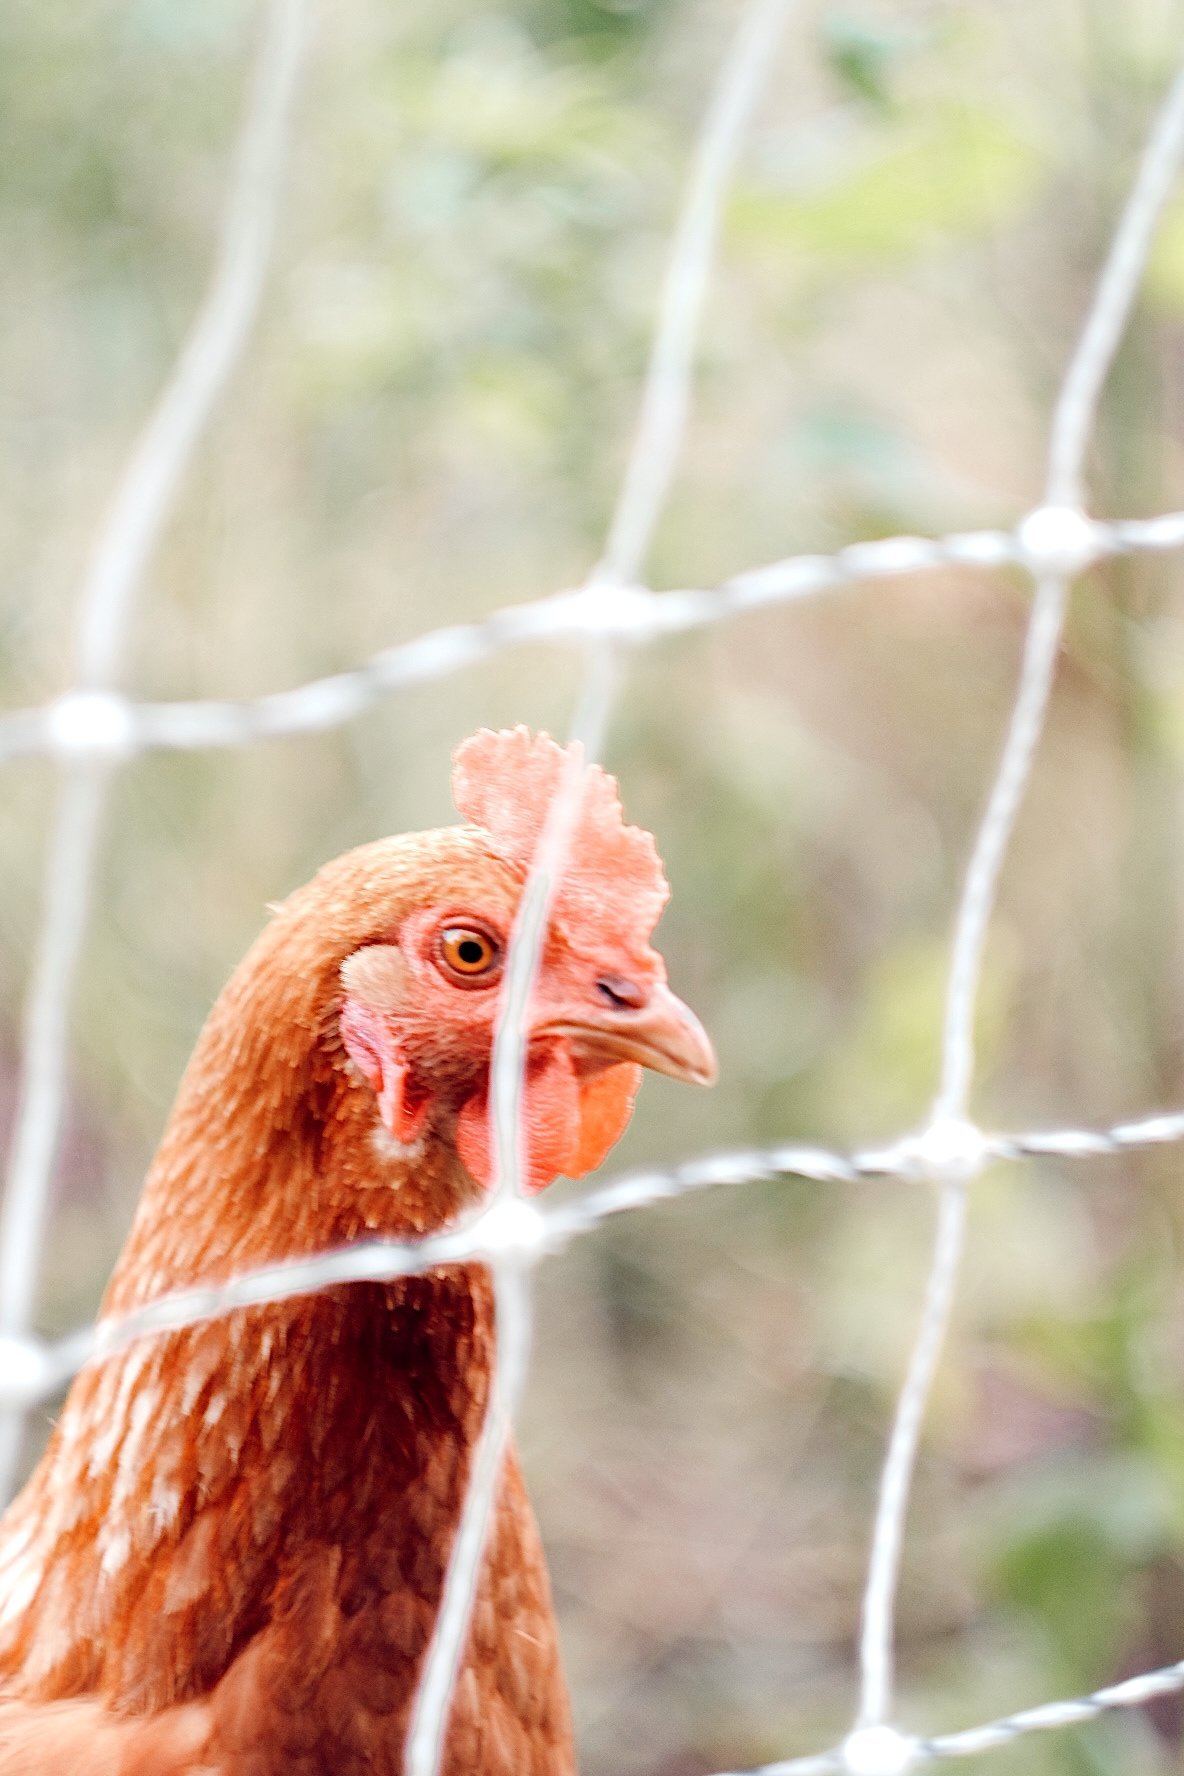 the head of a red hen